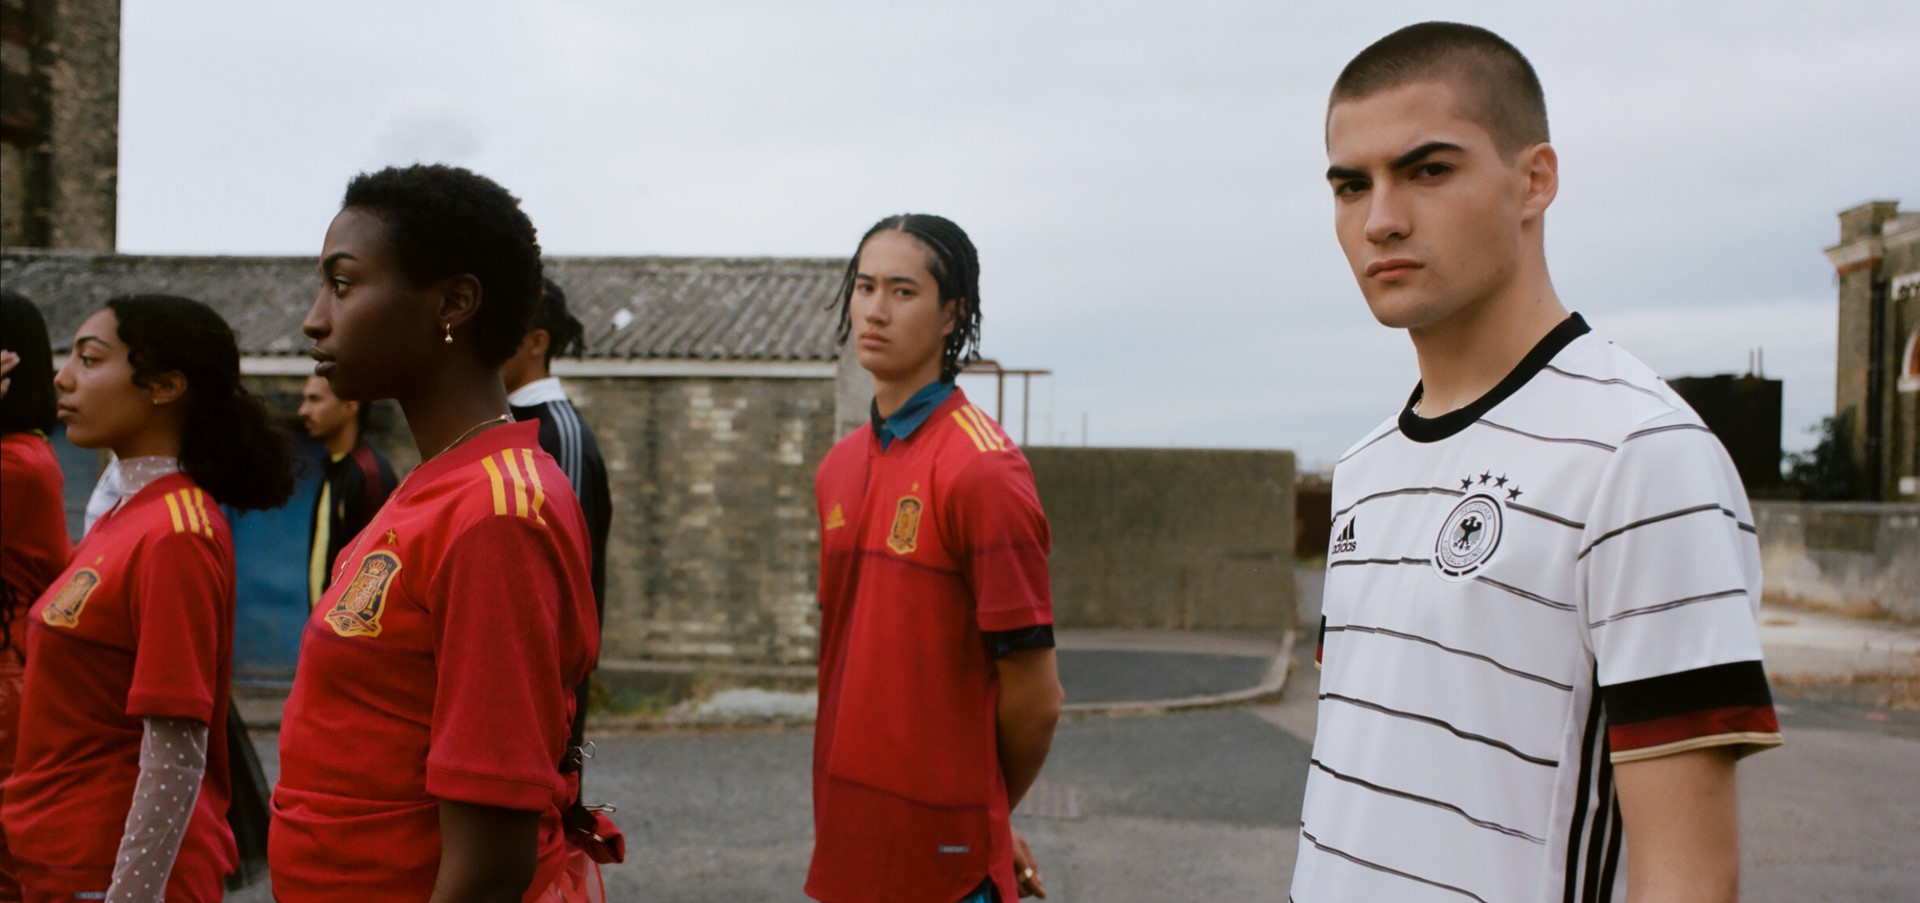 adidas unveils its line-up of home jerseys for UEFA EURO2020